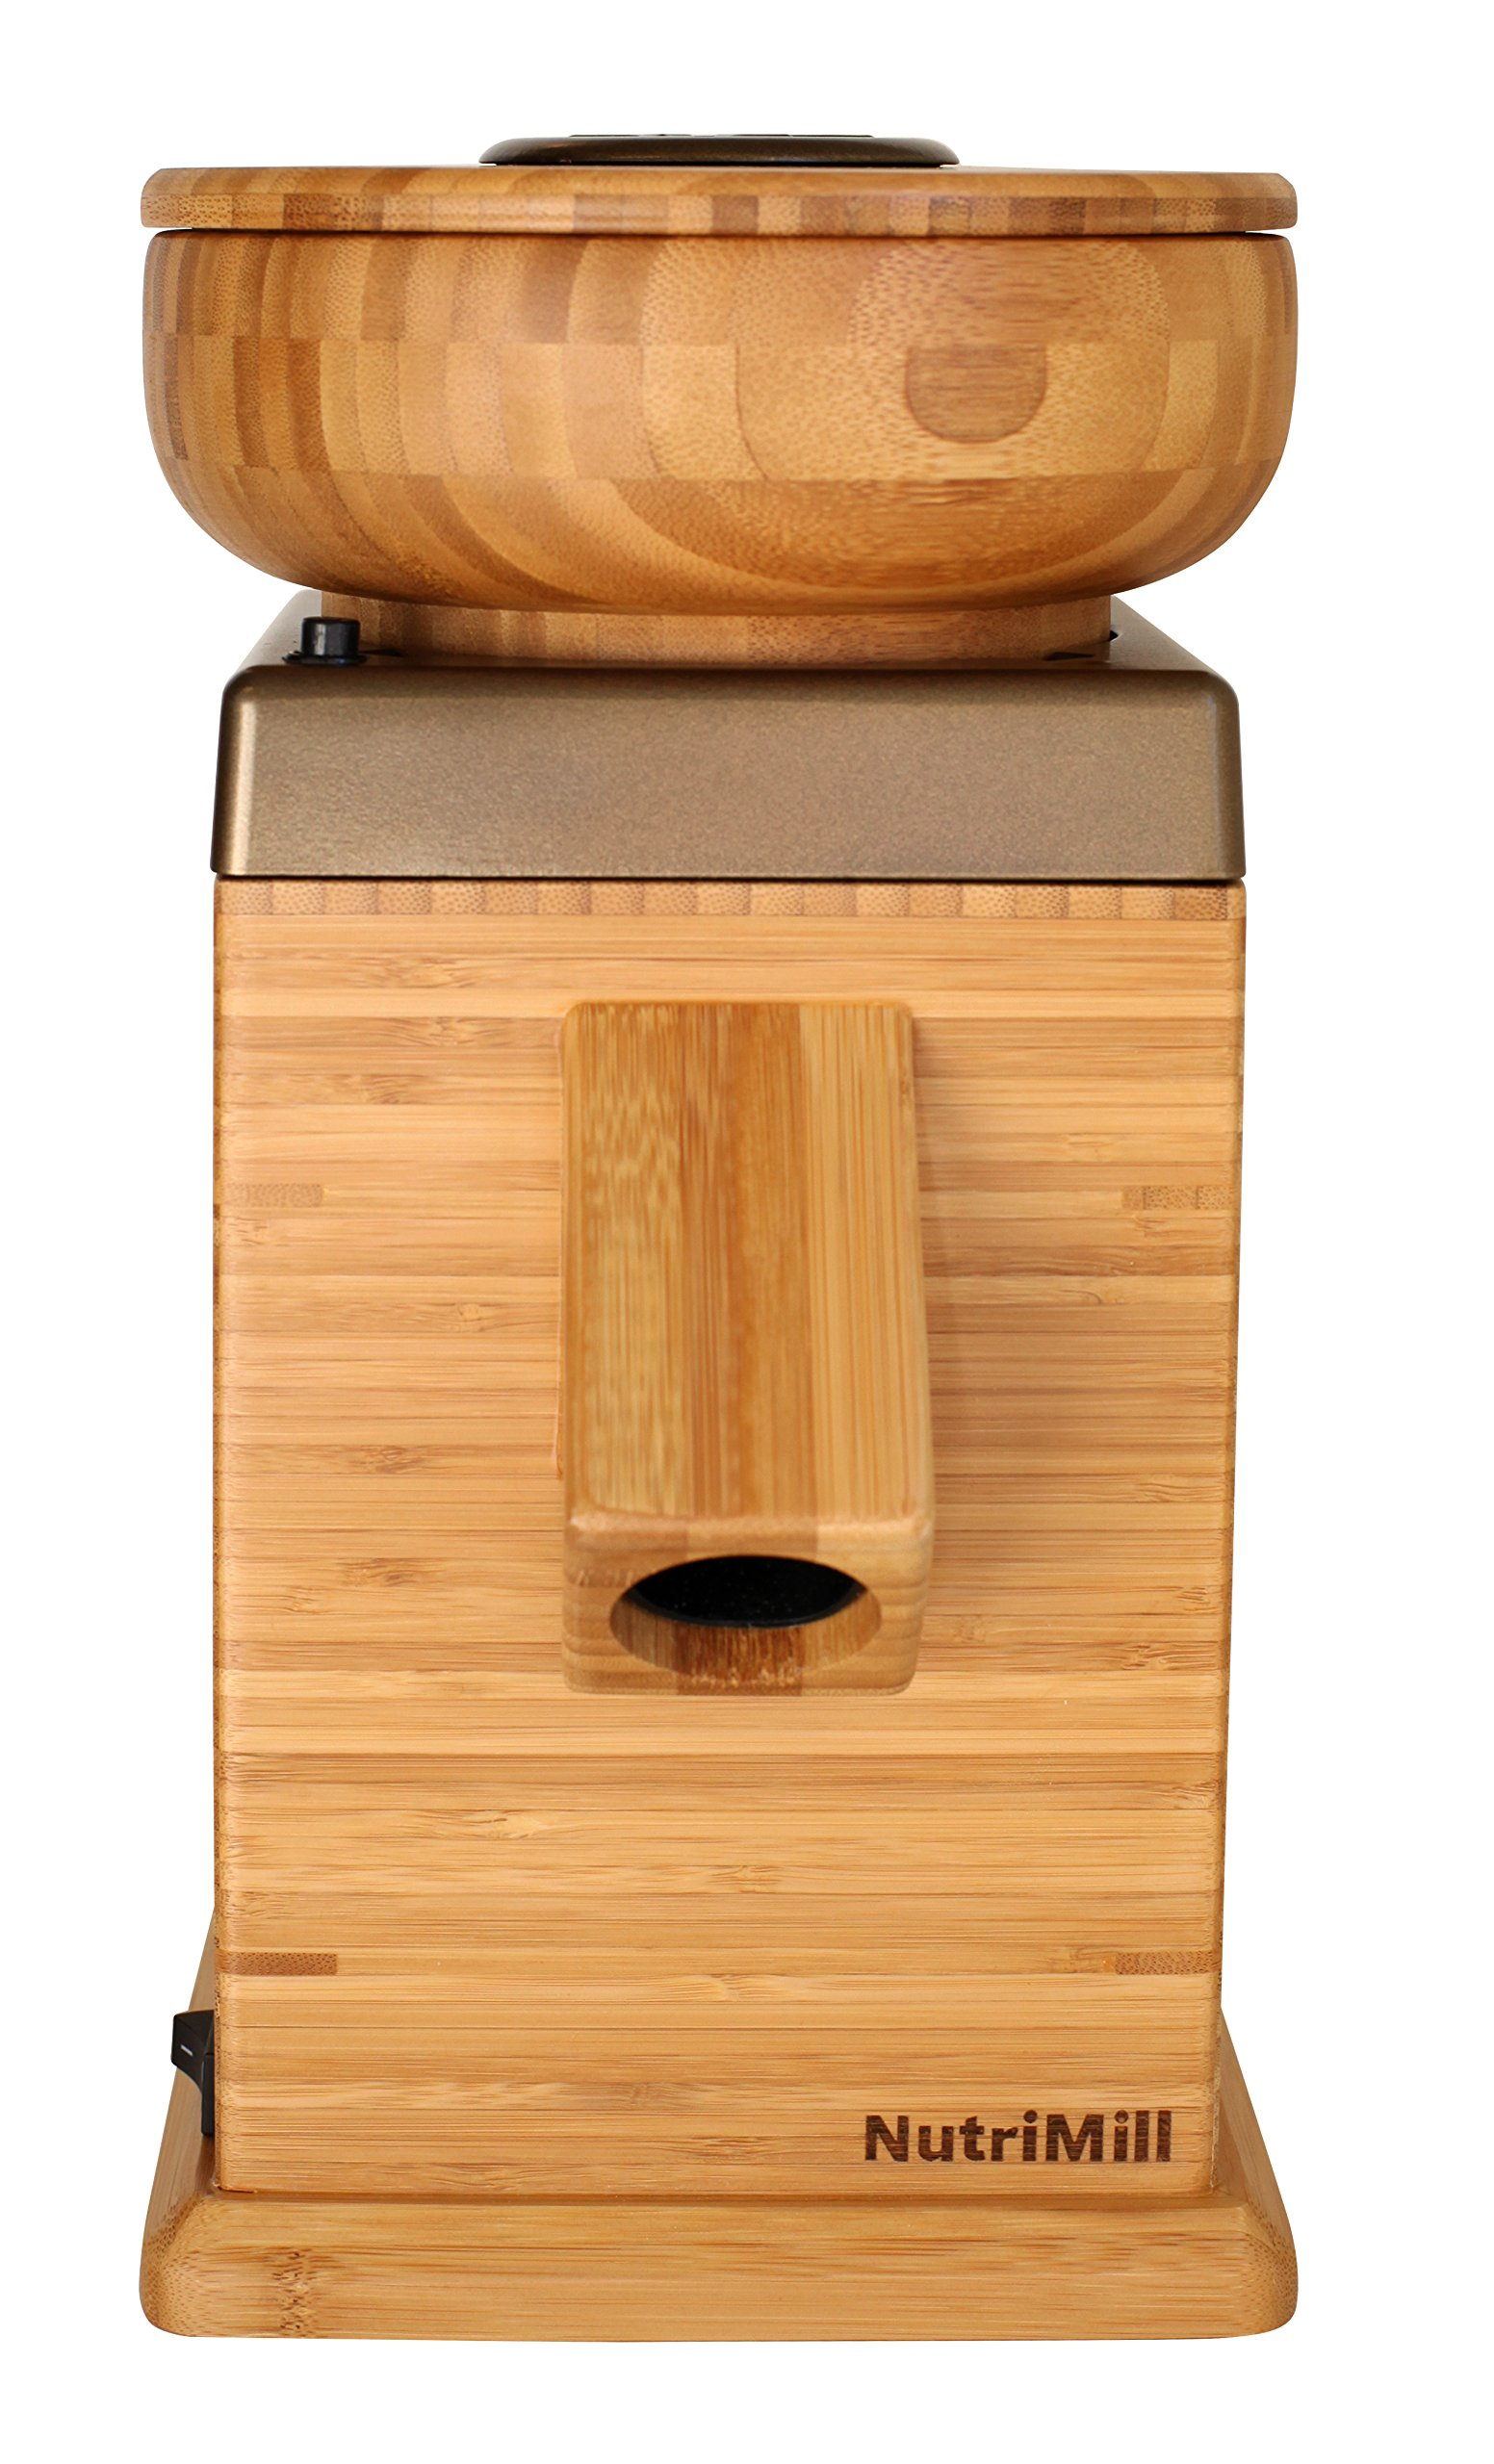 NutriMill Harvest Stone Grain Mill, 450 Watt - Gold by Nutrimill (Image #1)